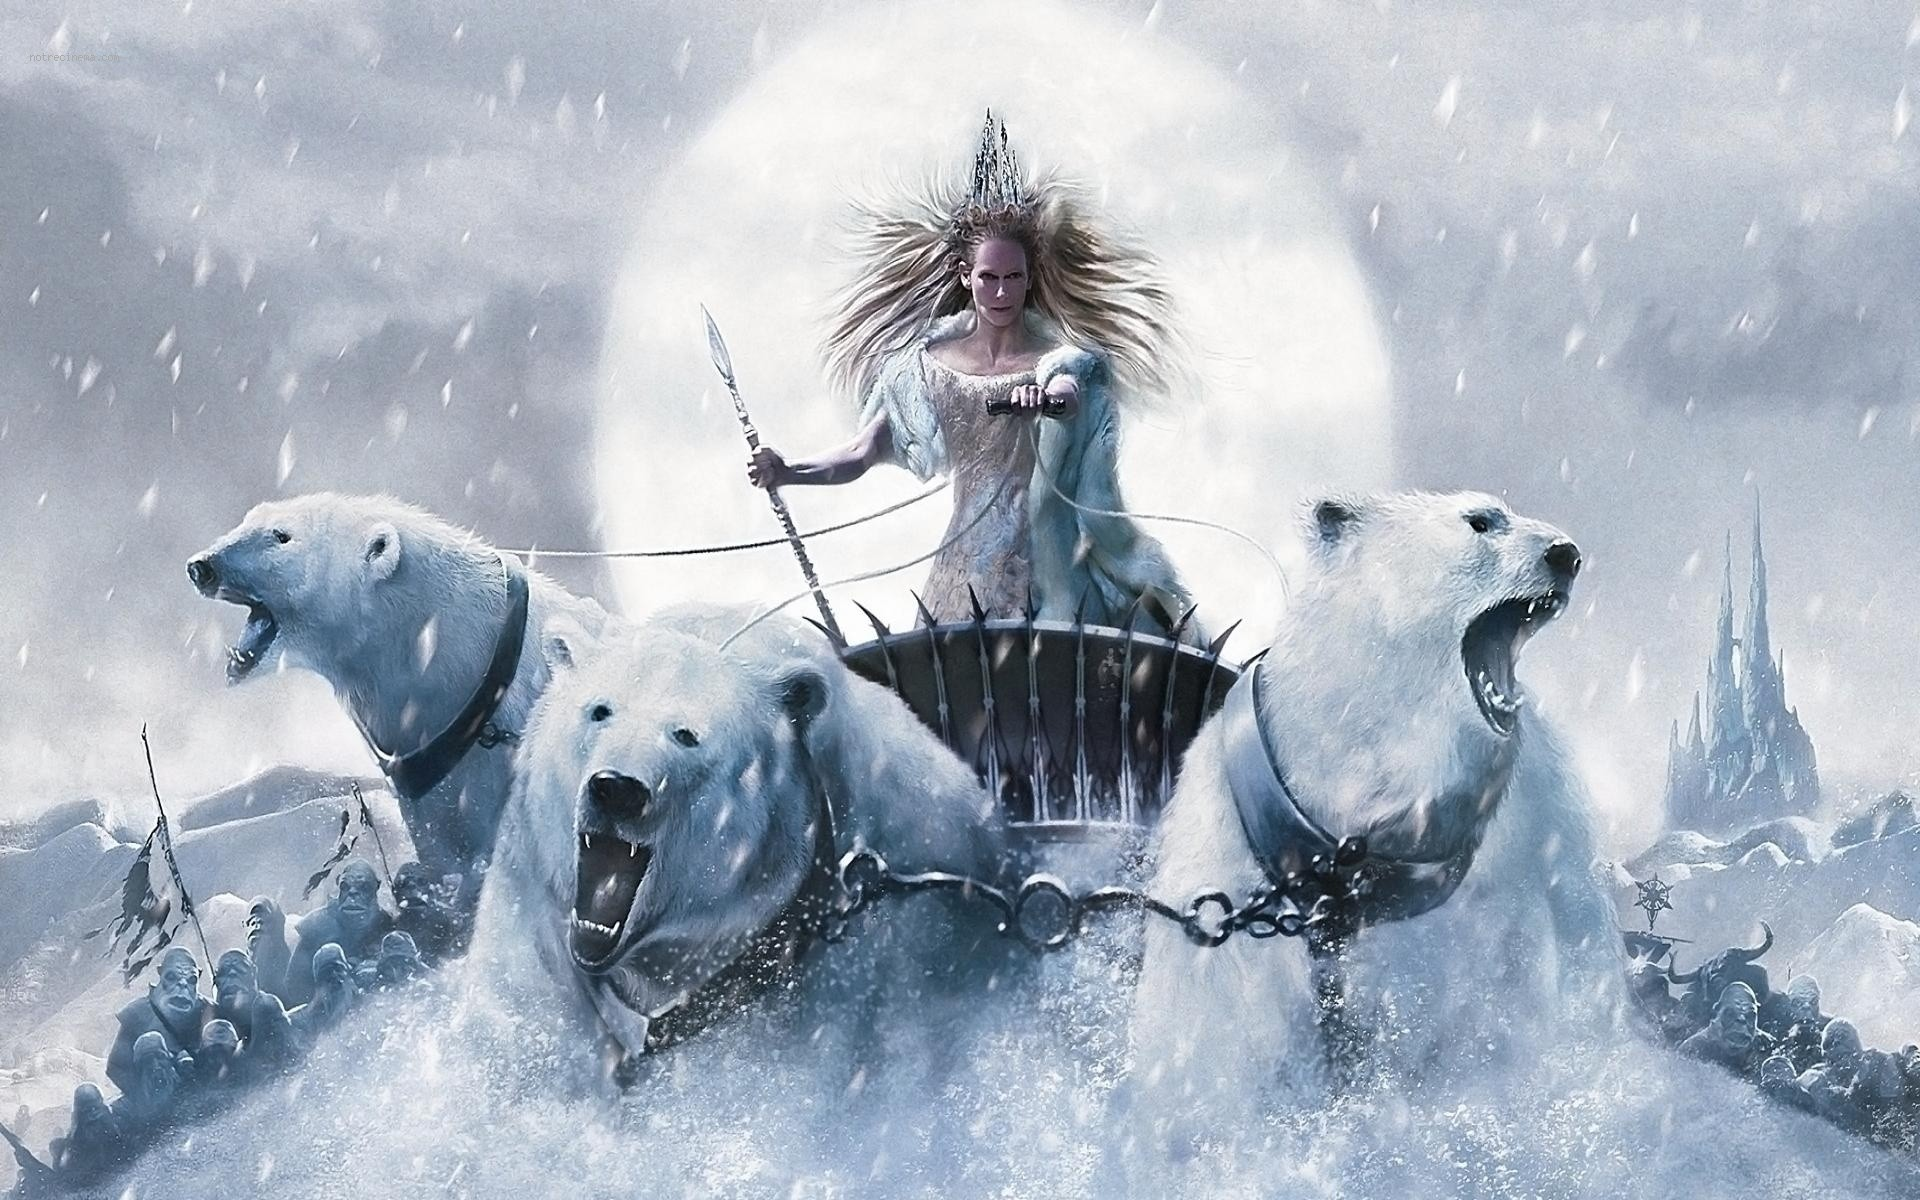 Res: 1920x1200, 13 The Chronicles of Narnia: The Lion, the Witch and the Wardrobe HD  Wallpapers | Background Images - Wallpaper Abyss